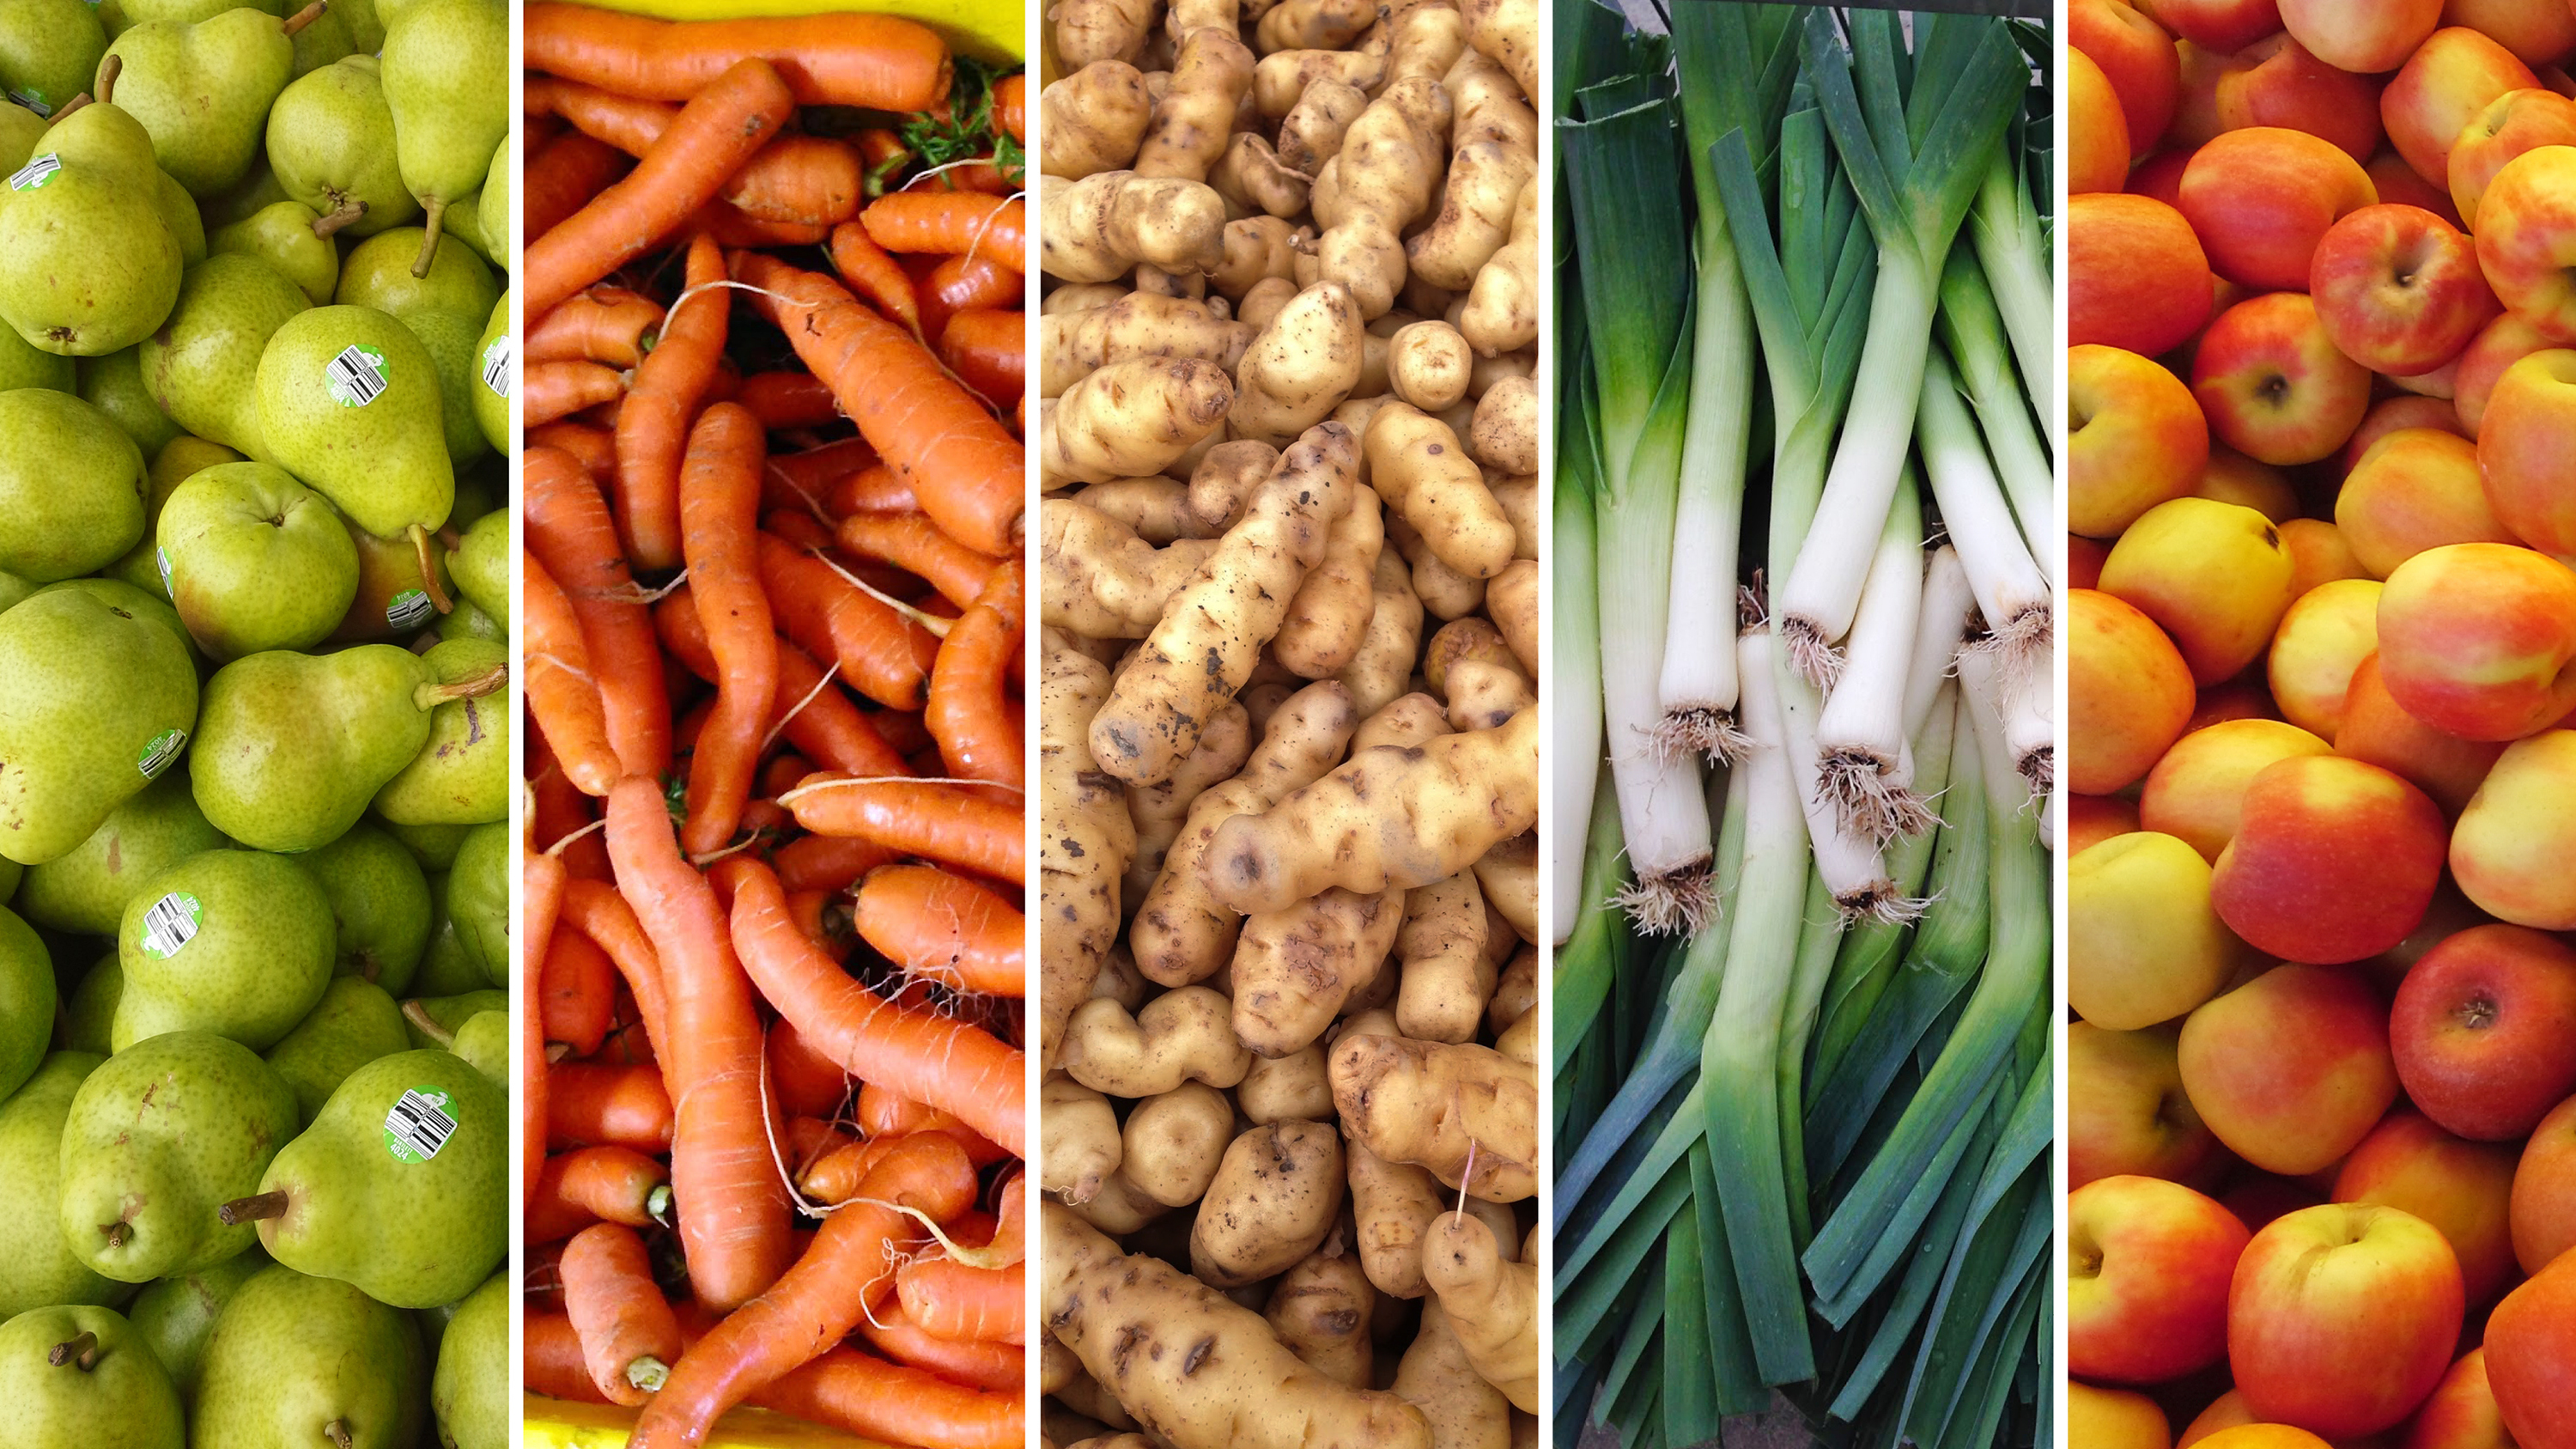 pics How to Use All the Veggies in Your CSA without Going Crazy: Part 1